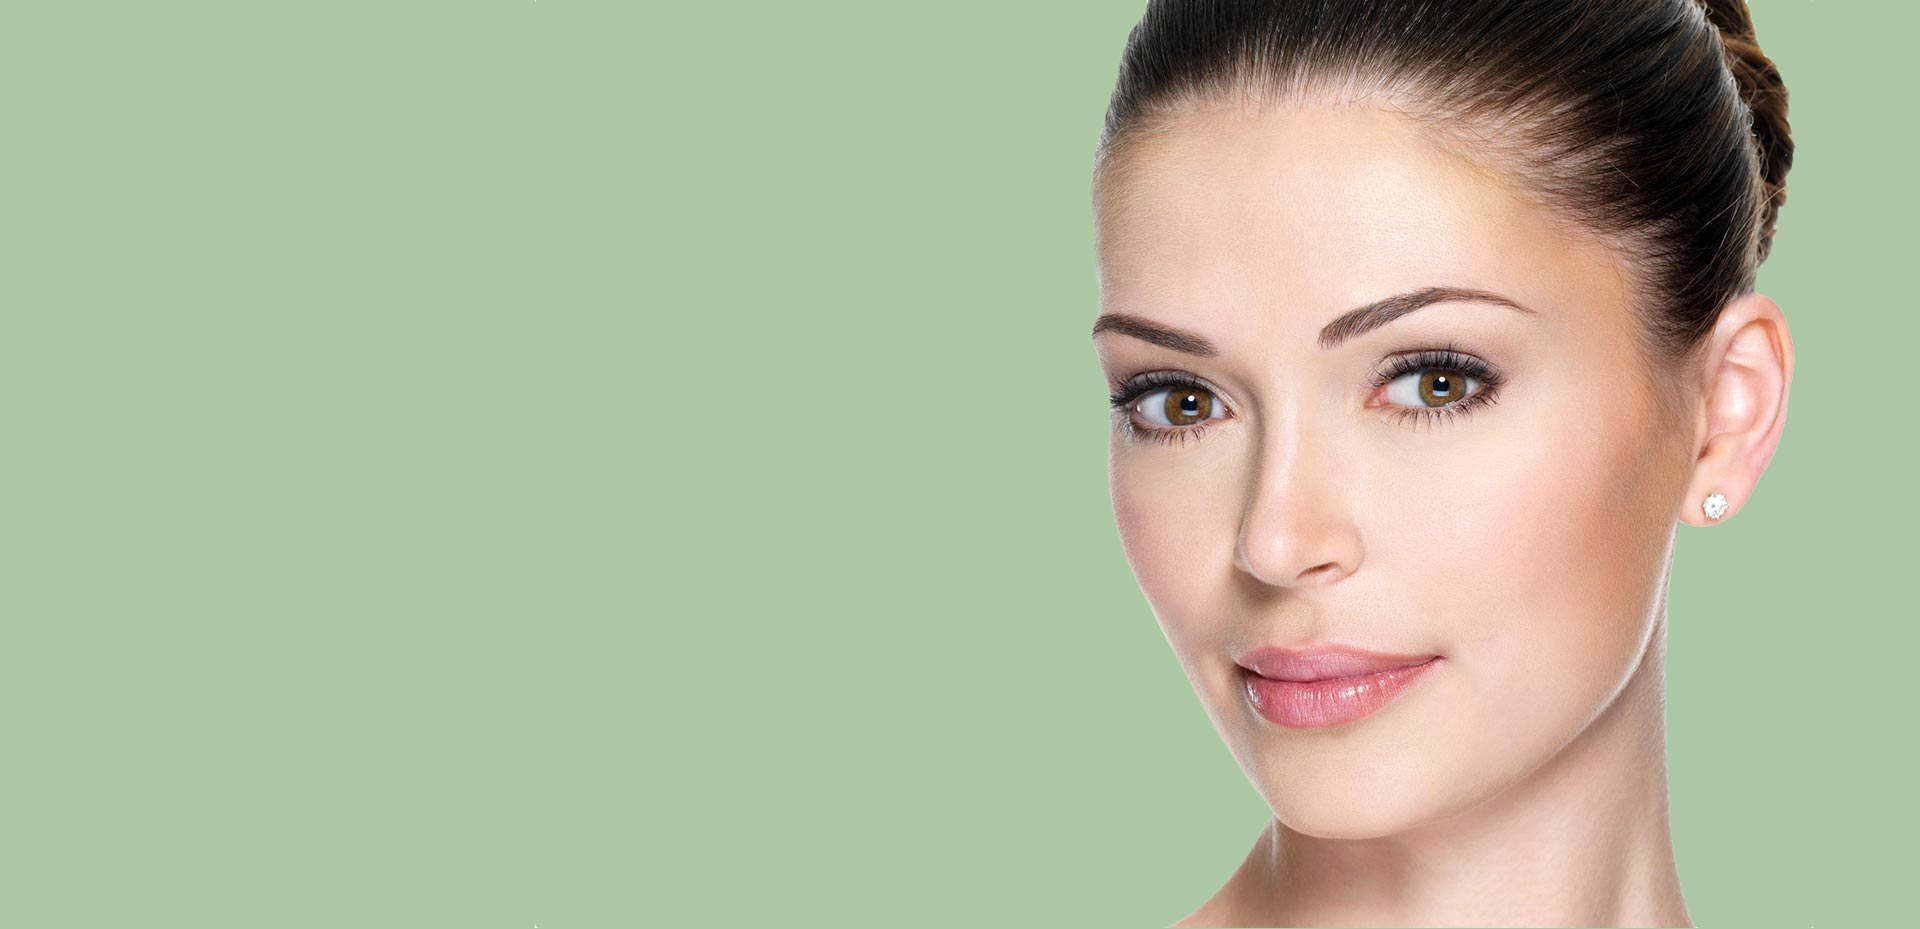 dermatology-No more Concealing! Give away your age with pride with our Dermatology Solutions.